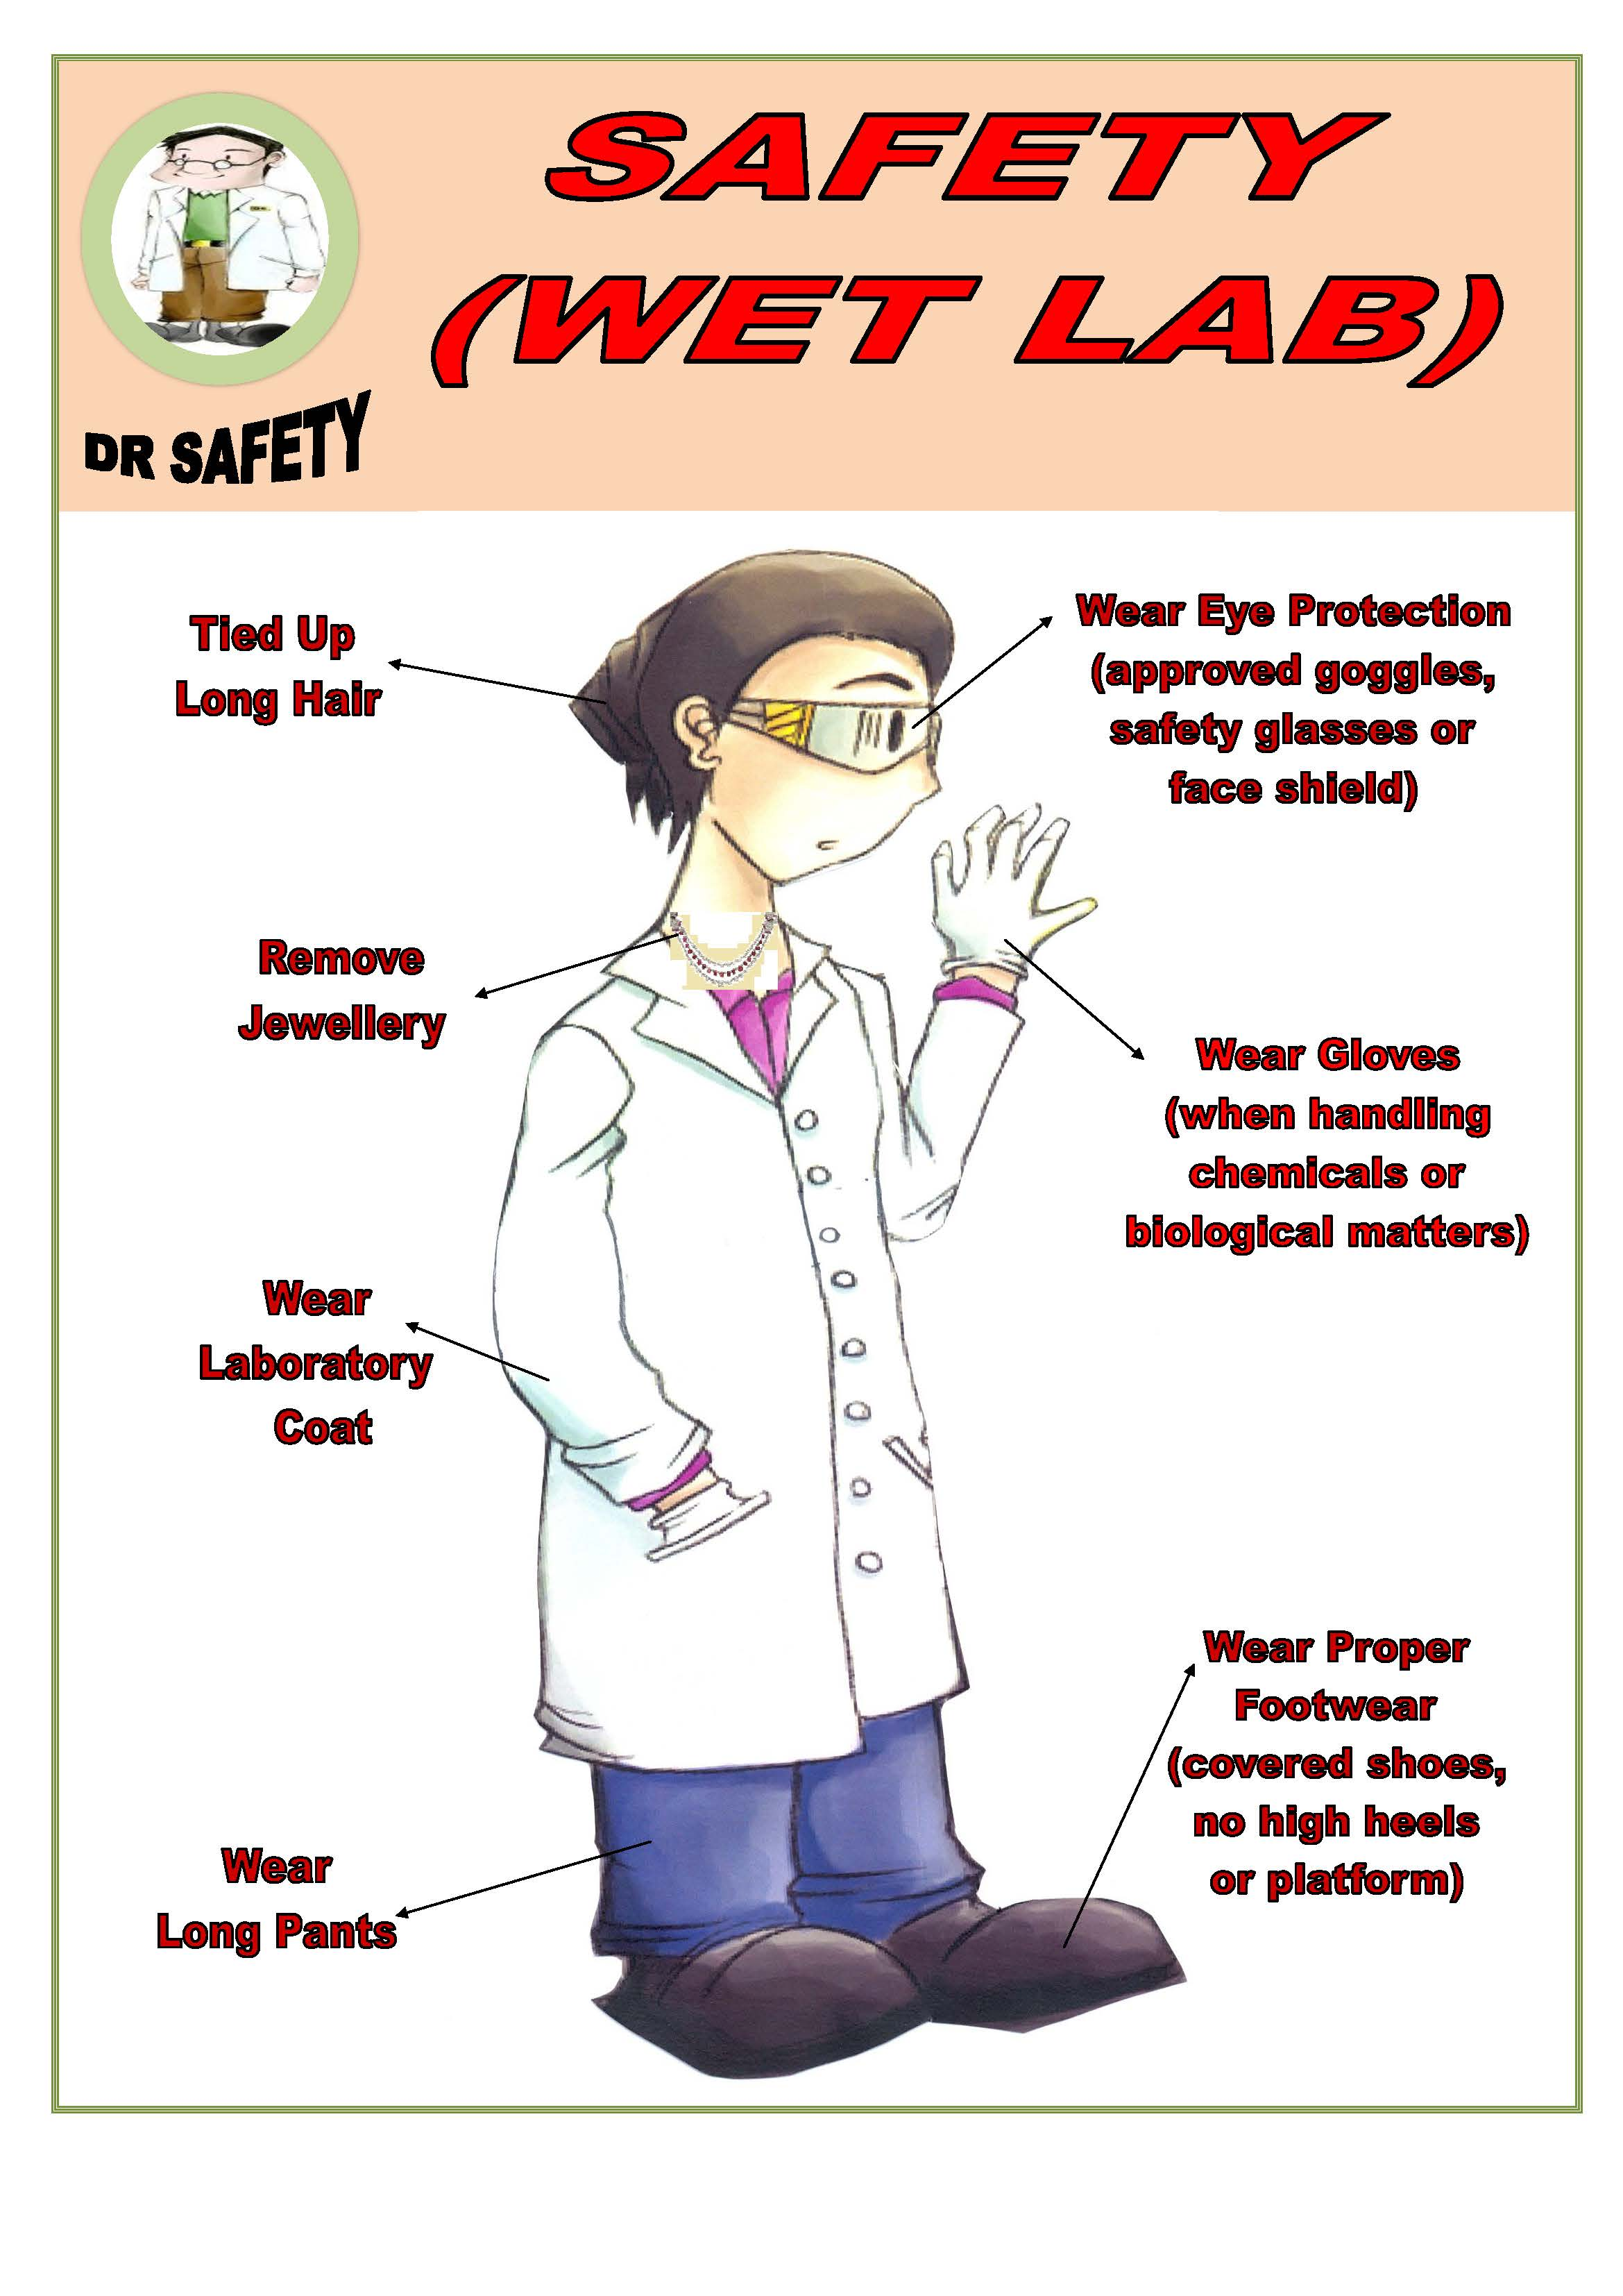 Lab safety goggles poster